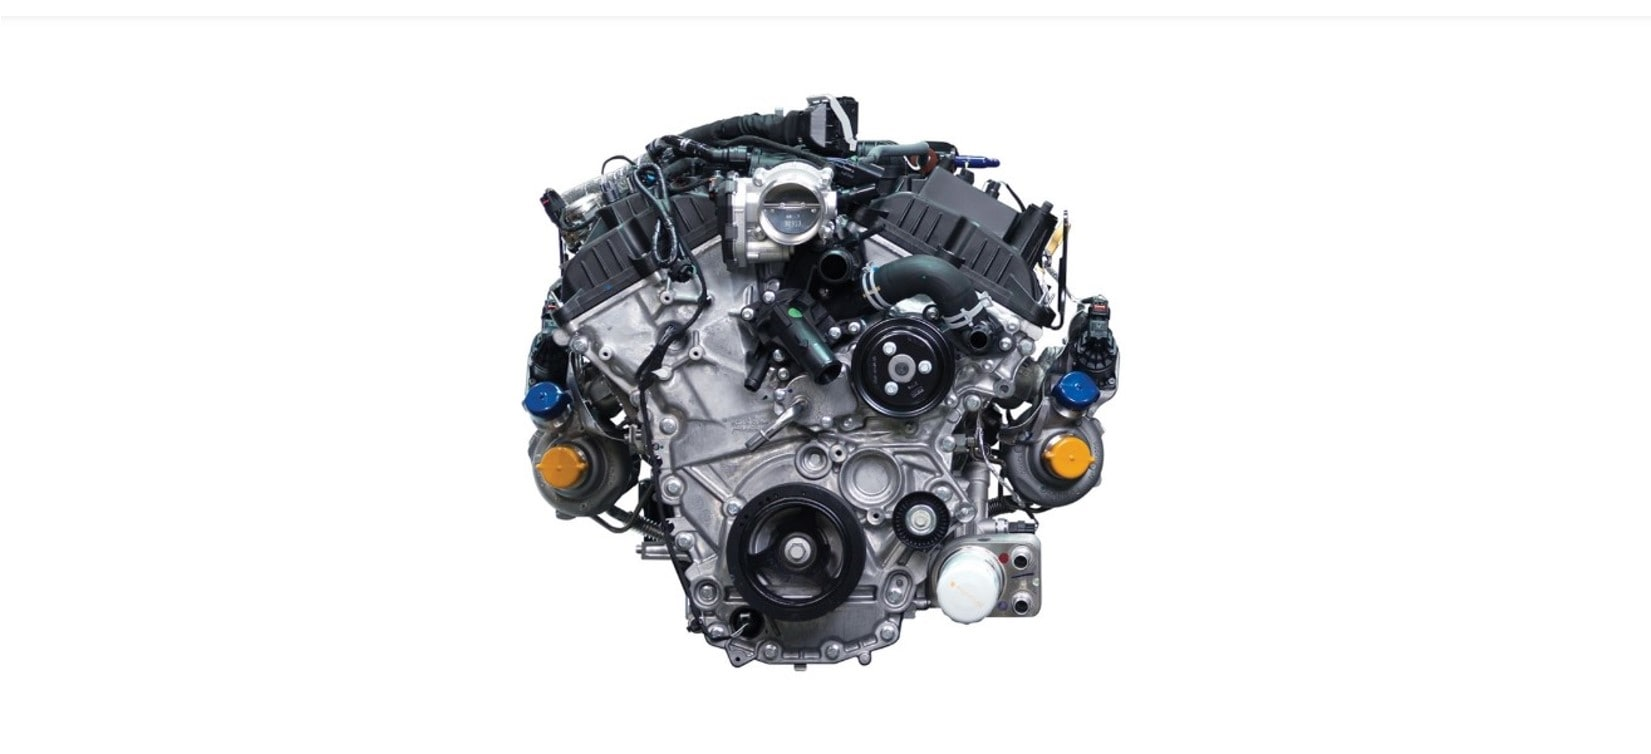 H.O. 3.5L EcoBoost Twin-Turbocharged V6 Ford F150 Engine